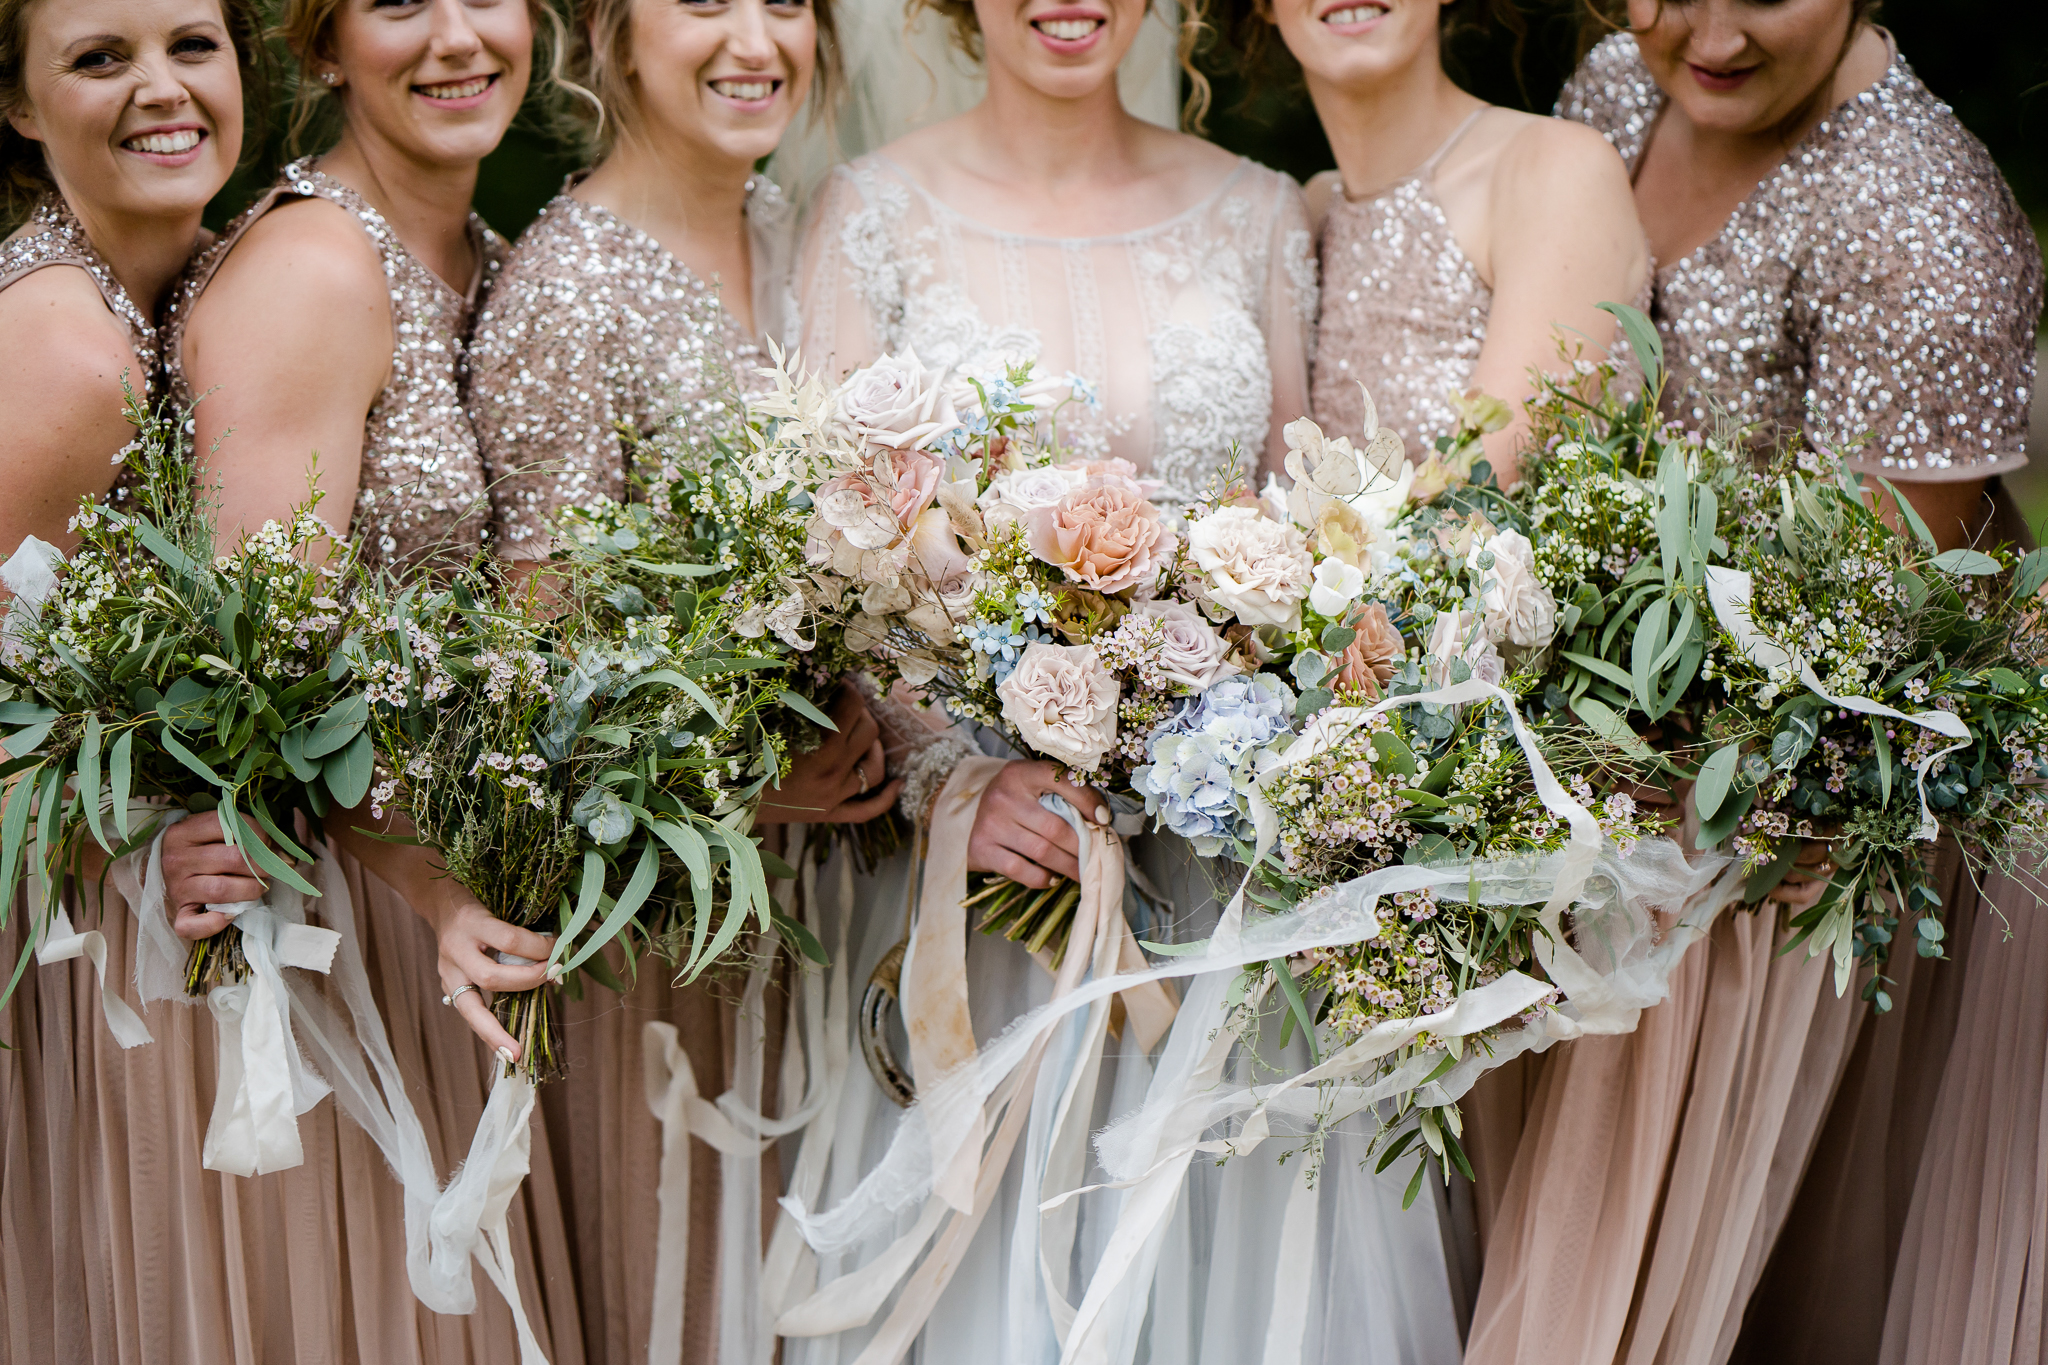 wild rustic wedding bouquets by Jenni Bloom Flowers